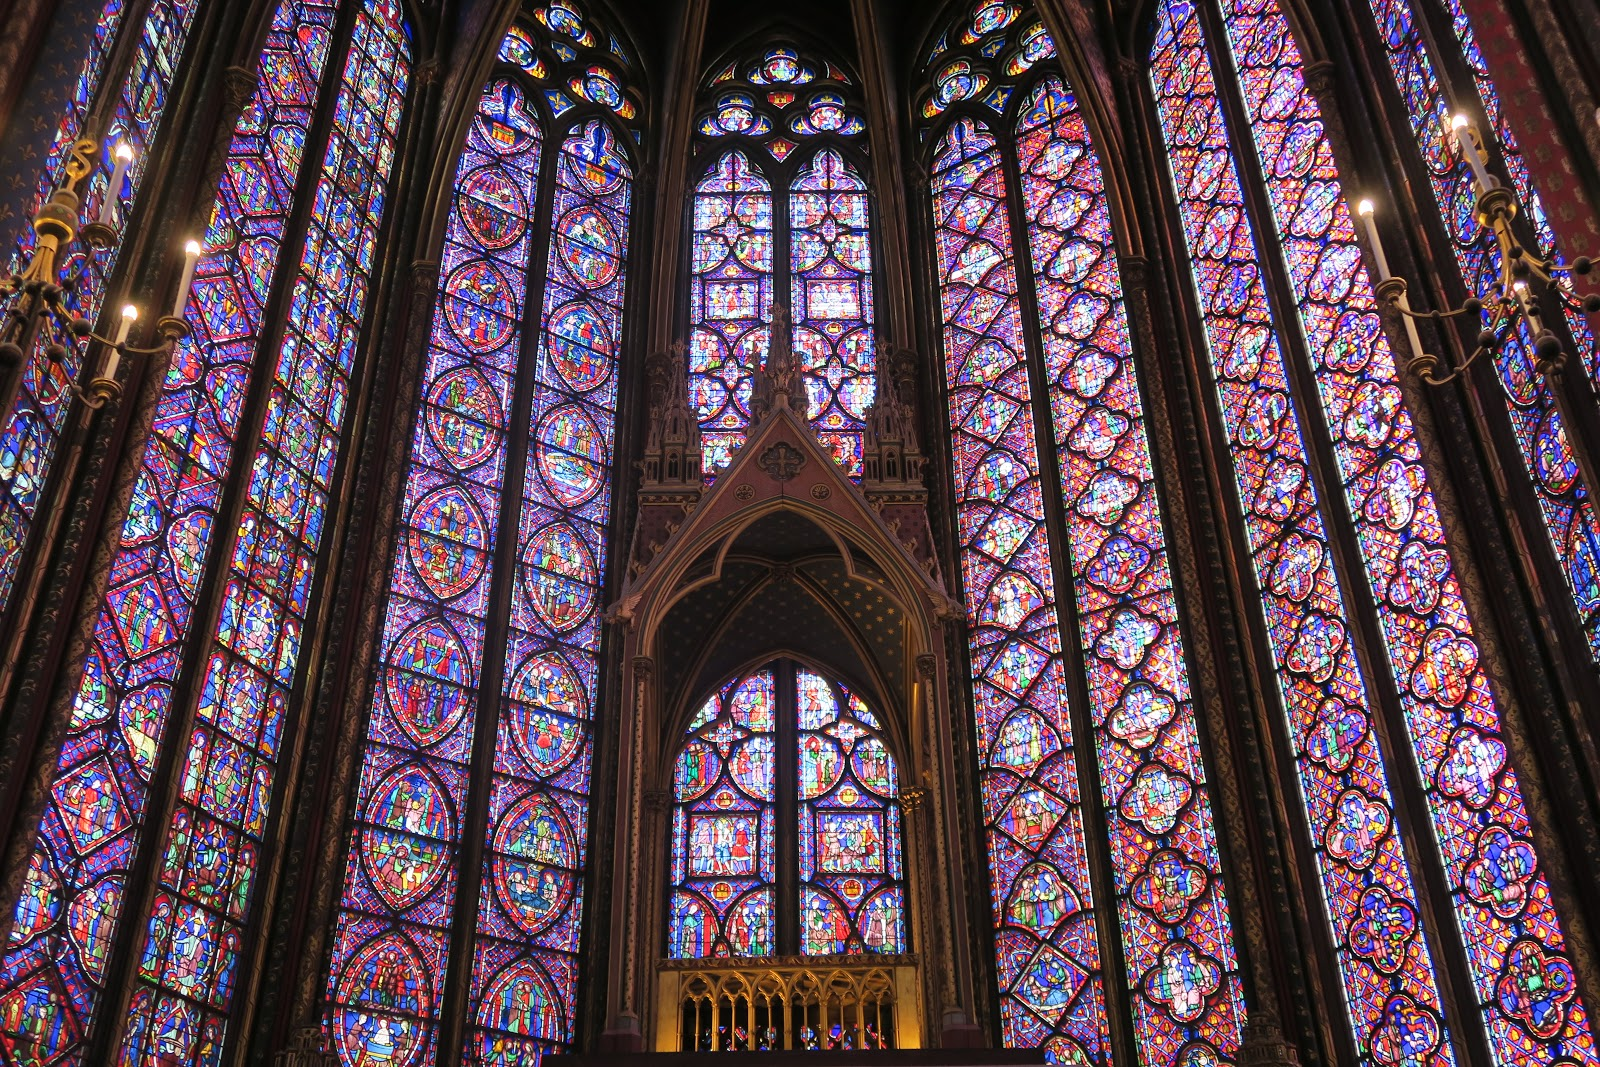 Sainte-Chapelle stained glass windows from our trip to Paris